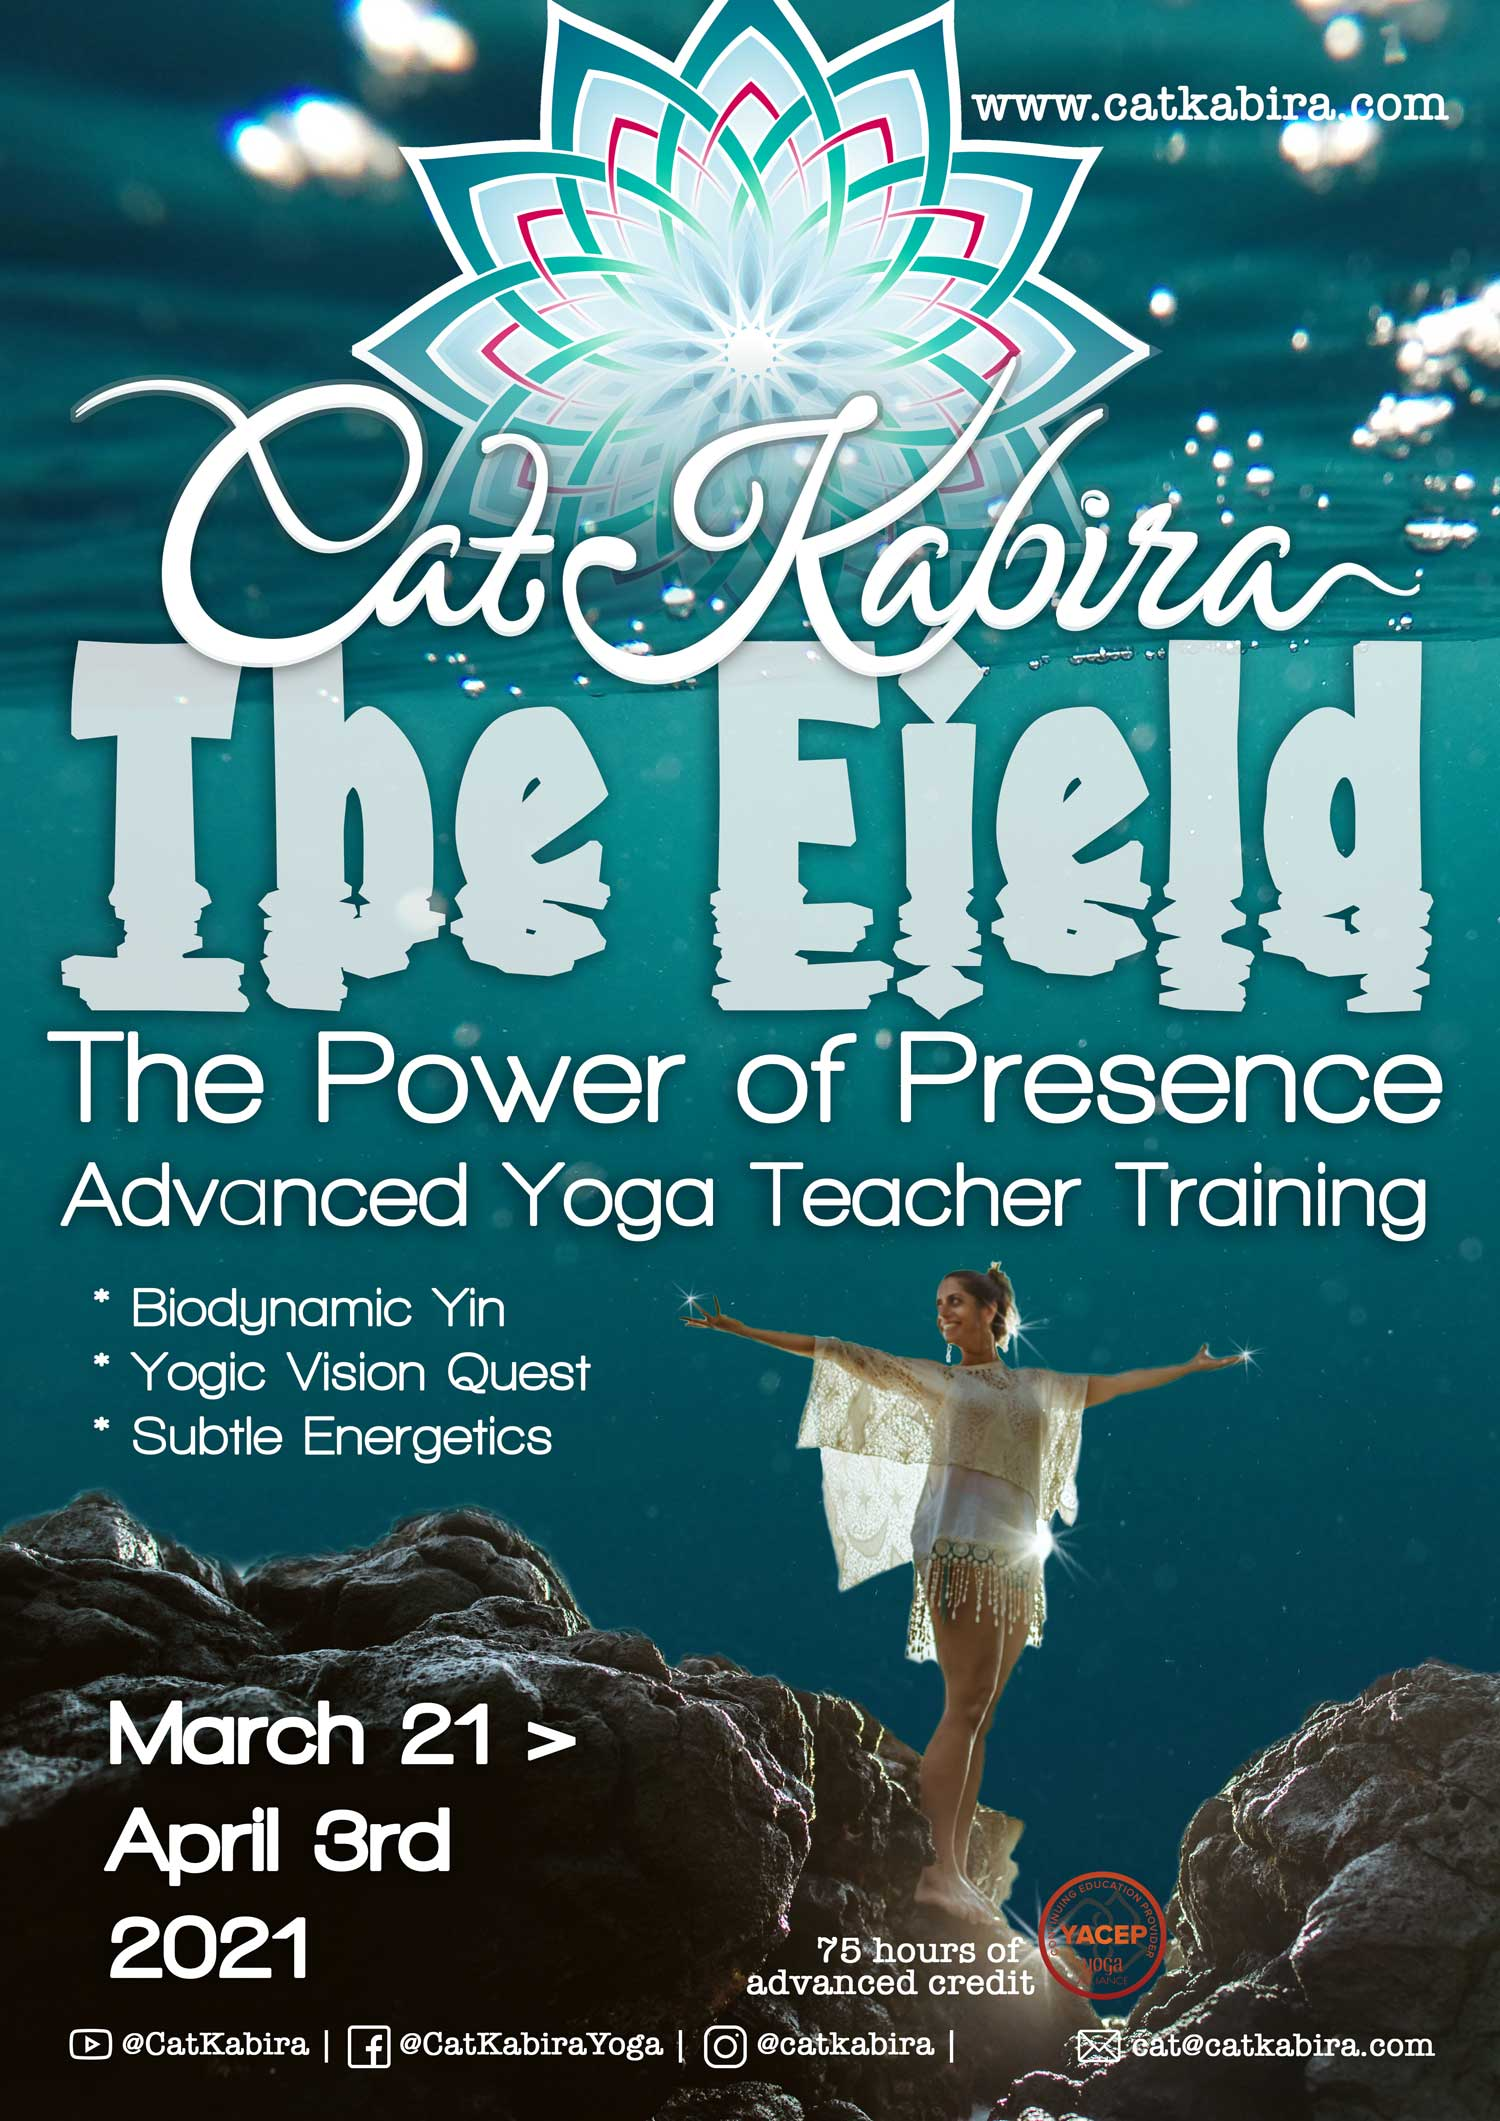 catkabira.com - The Field, the Power of Presence In-Person Advanced Yoga Teacher Training 2021 Bali